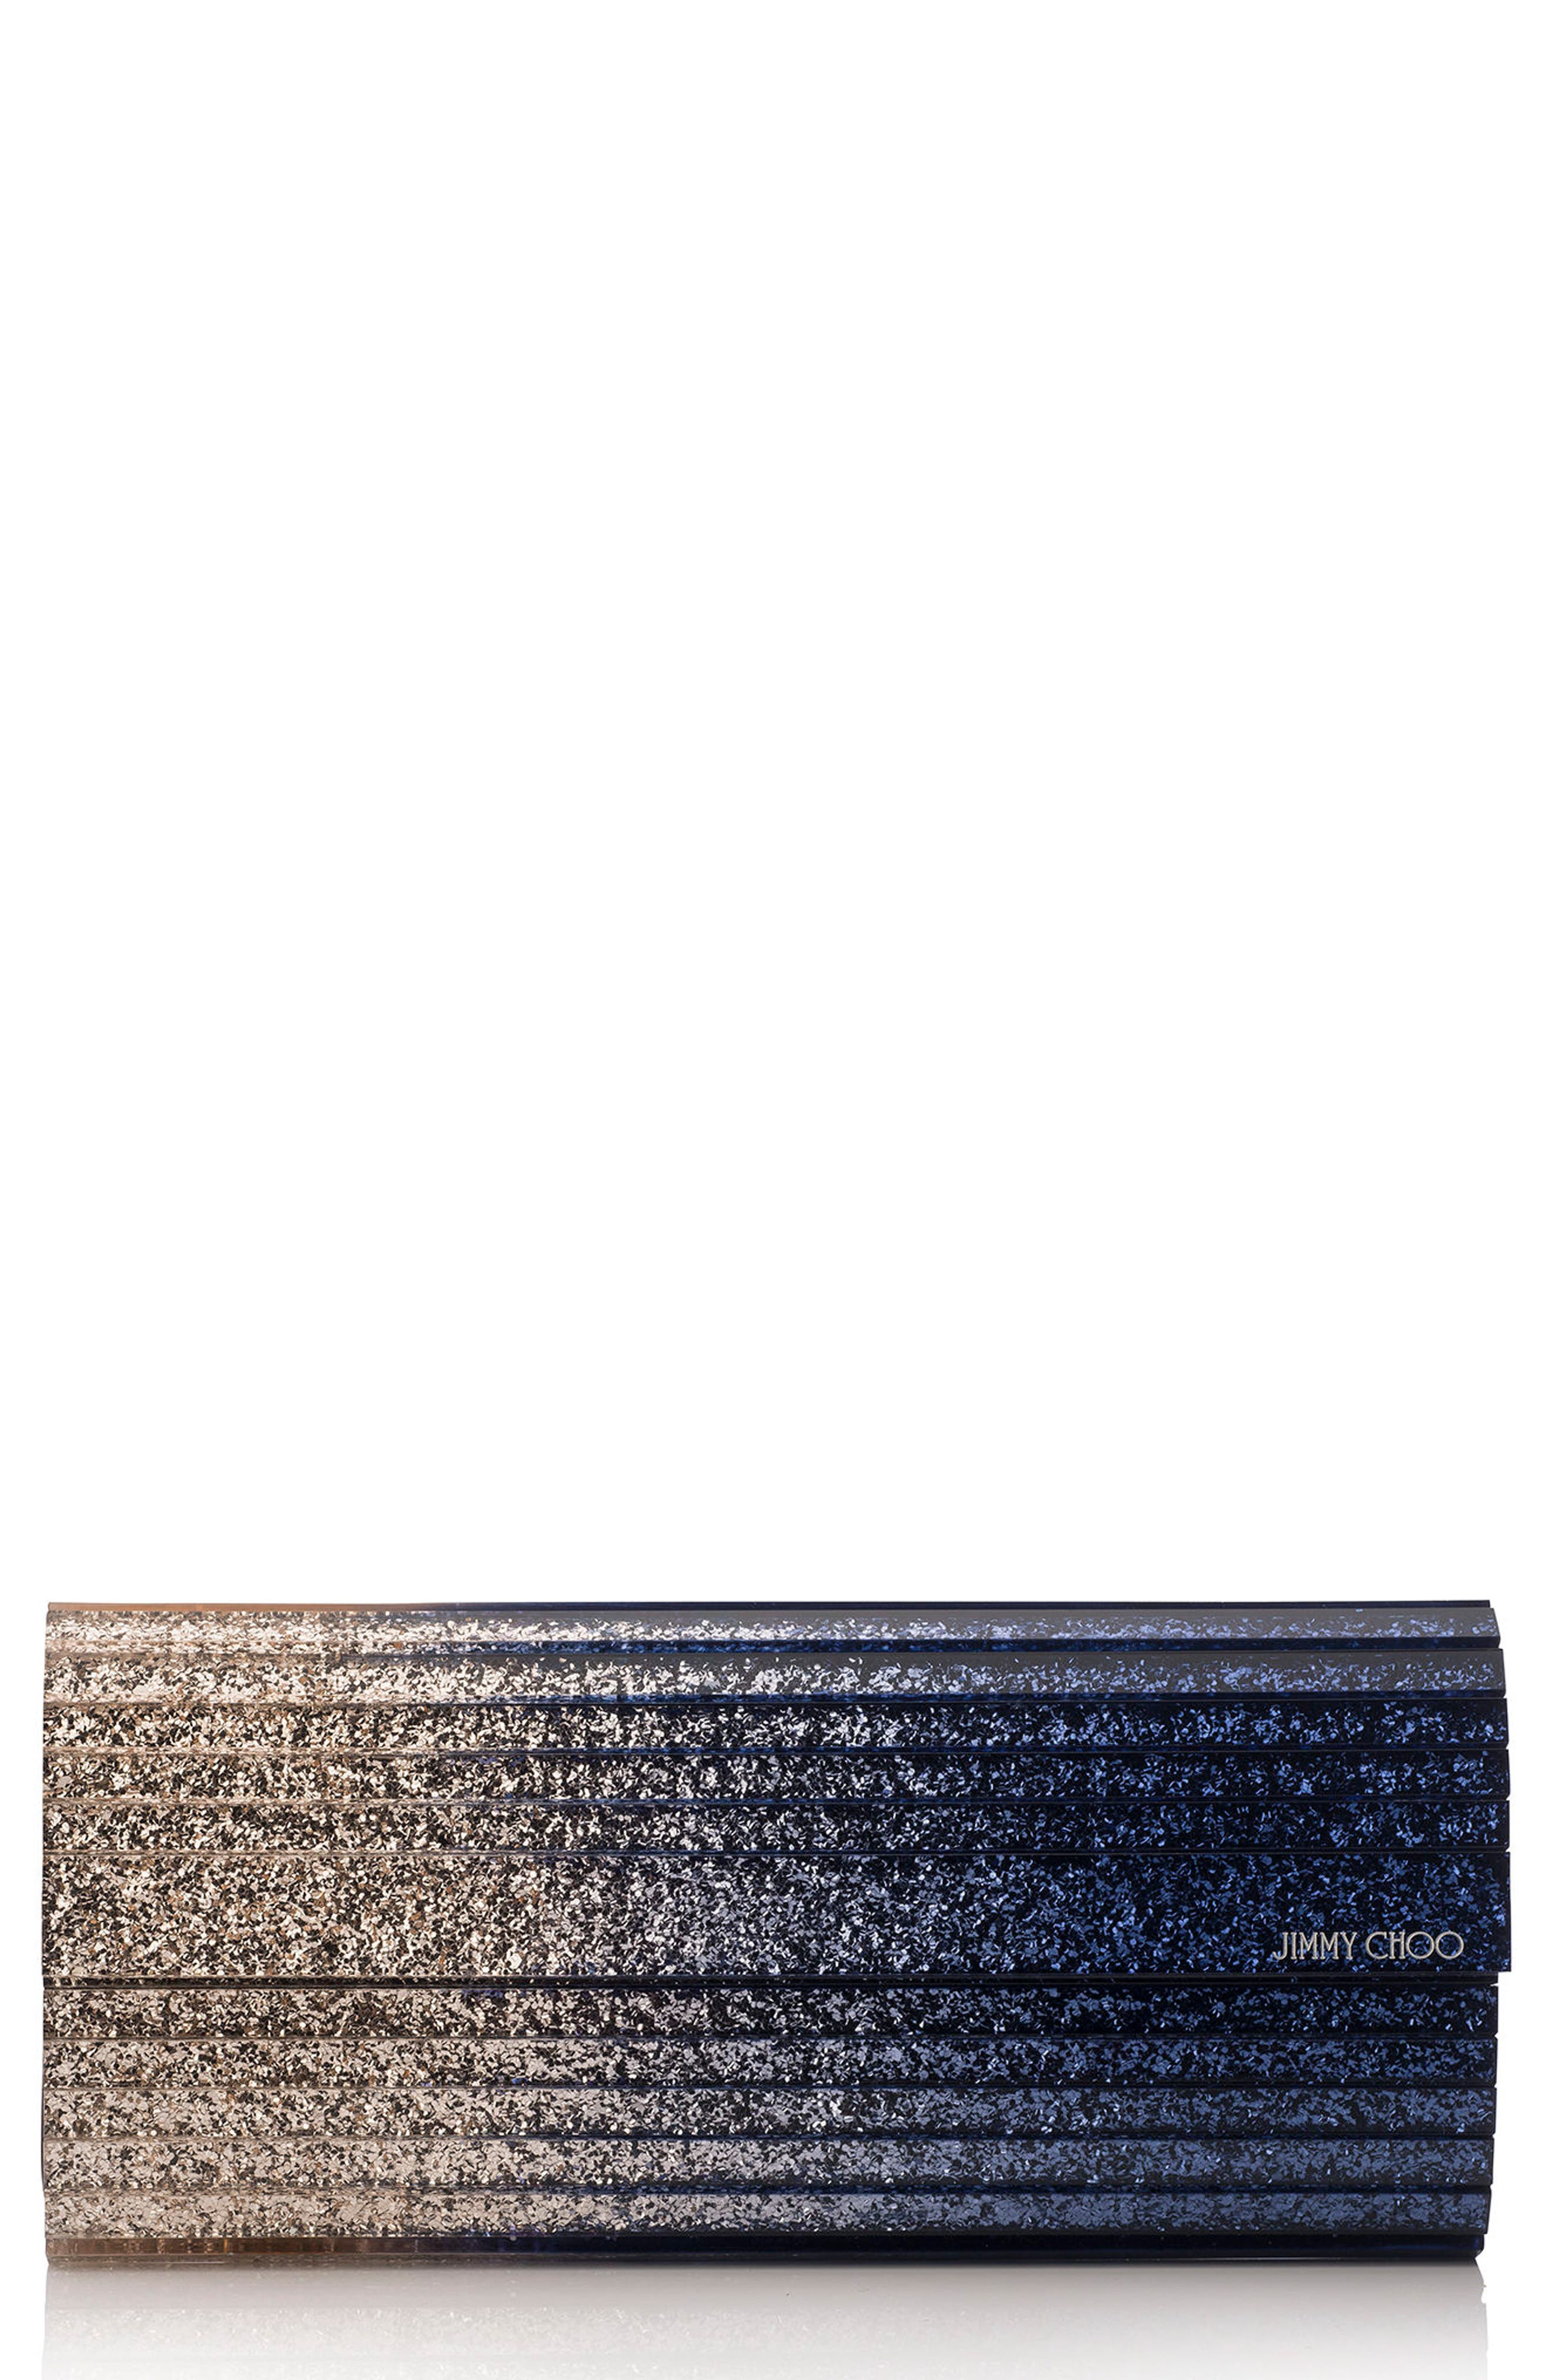 JIMMY CHOO, 'Sweetie' Clutch, Main thumbnail 1, color, 041